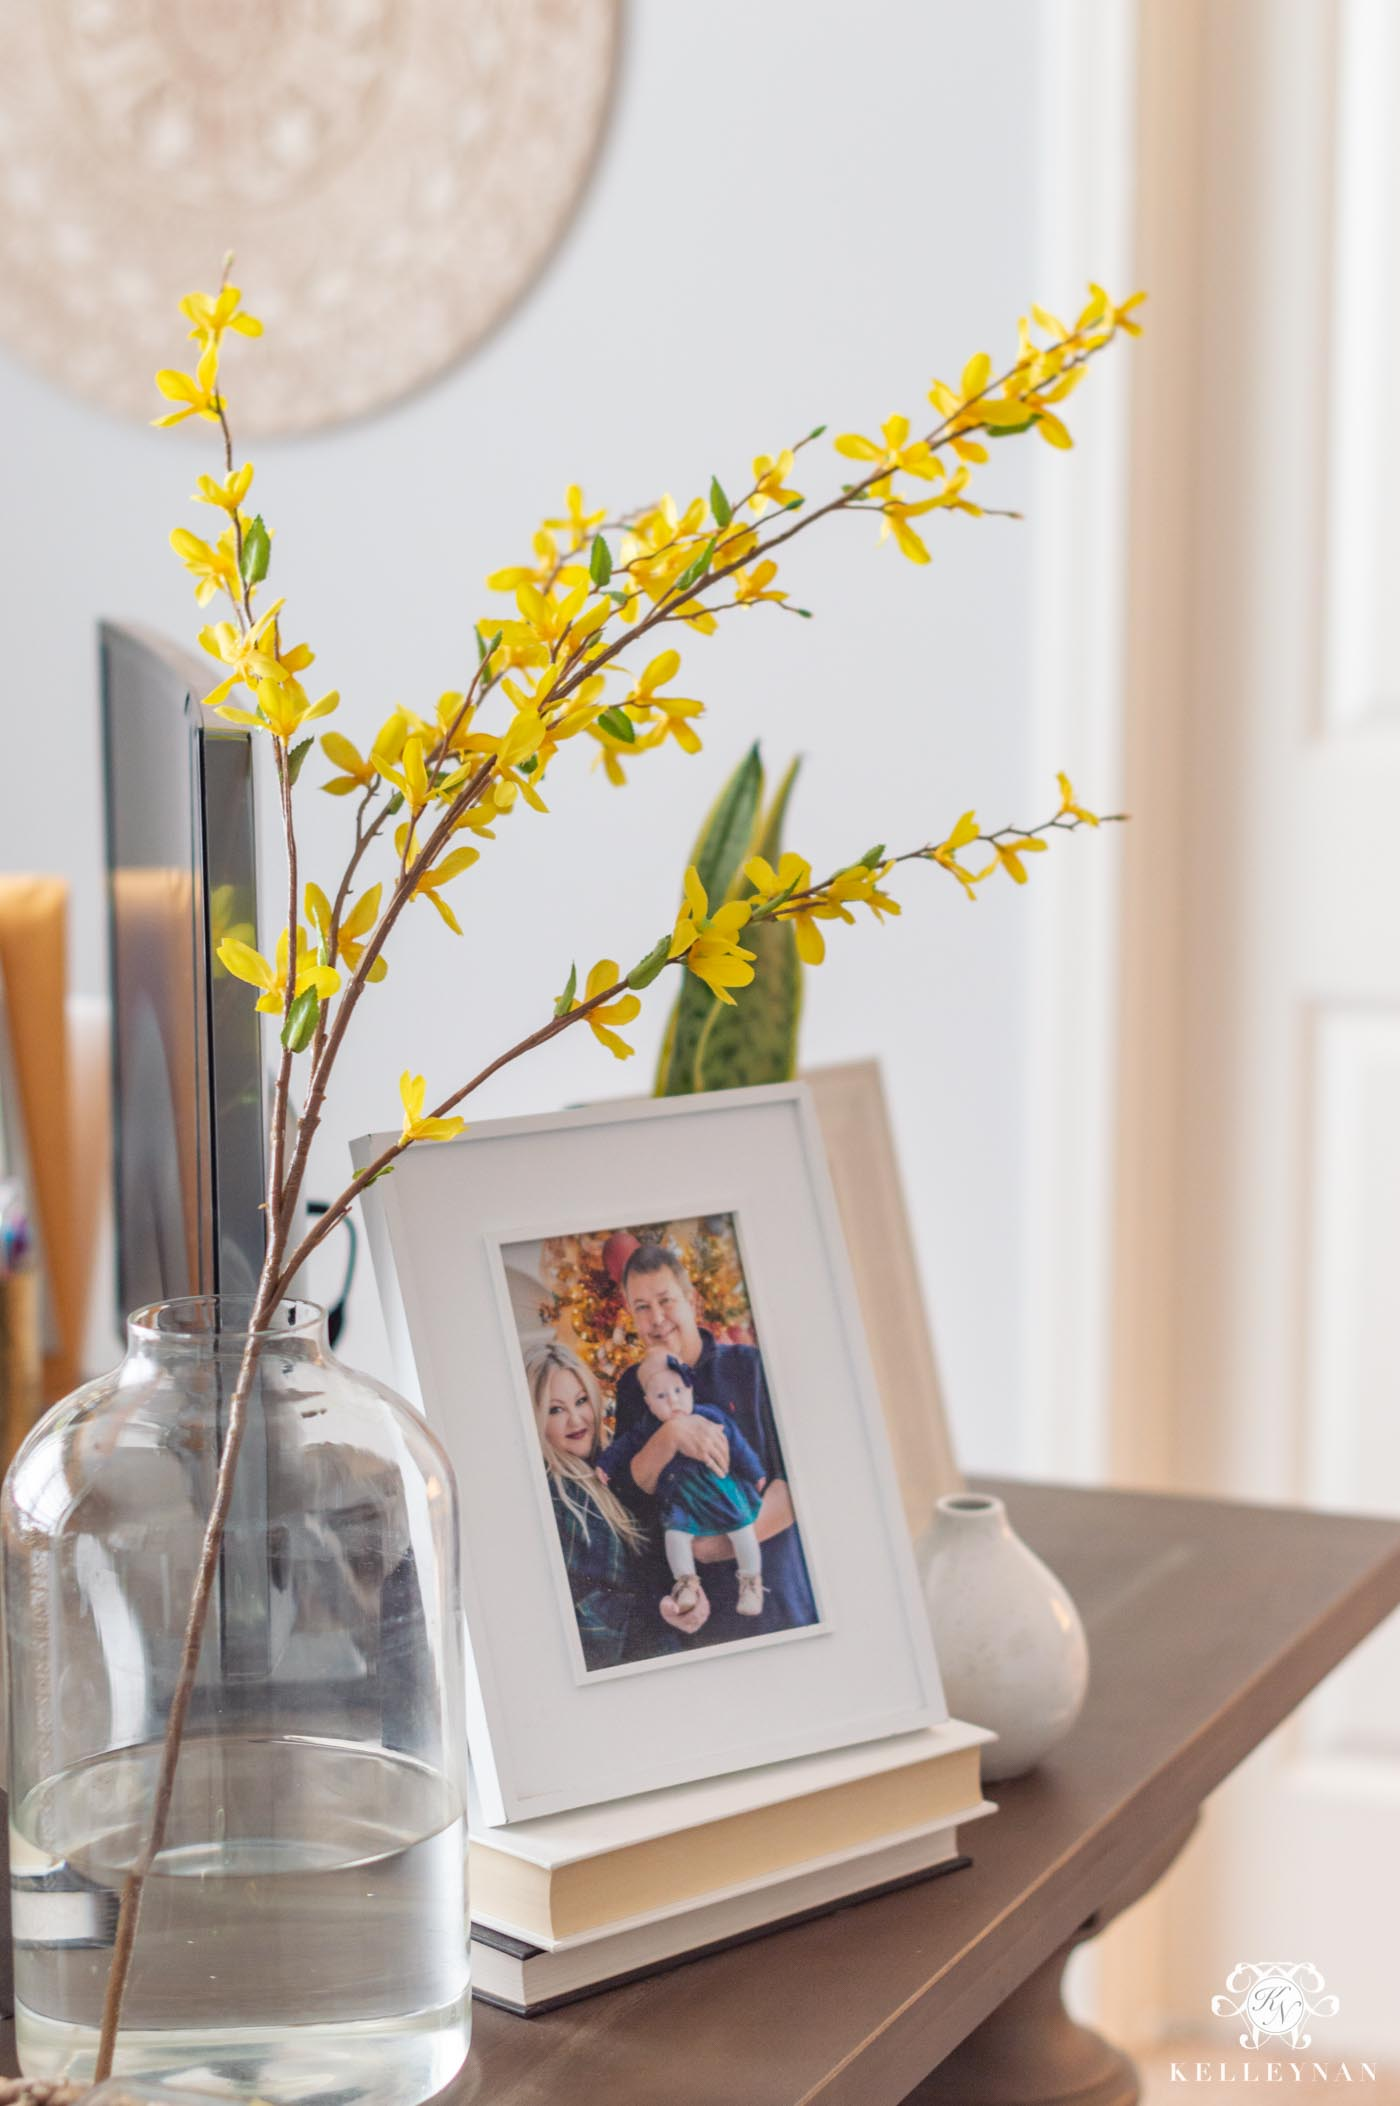 How to Use Faux Flowers to Decorate